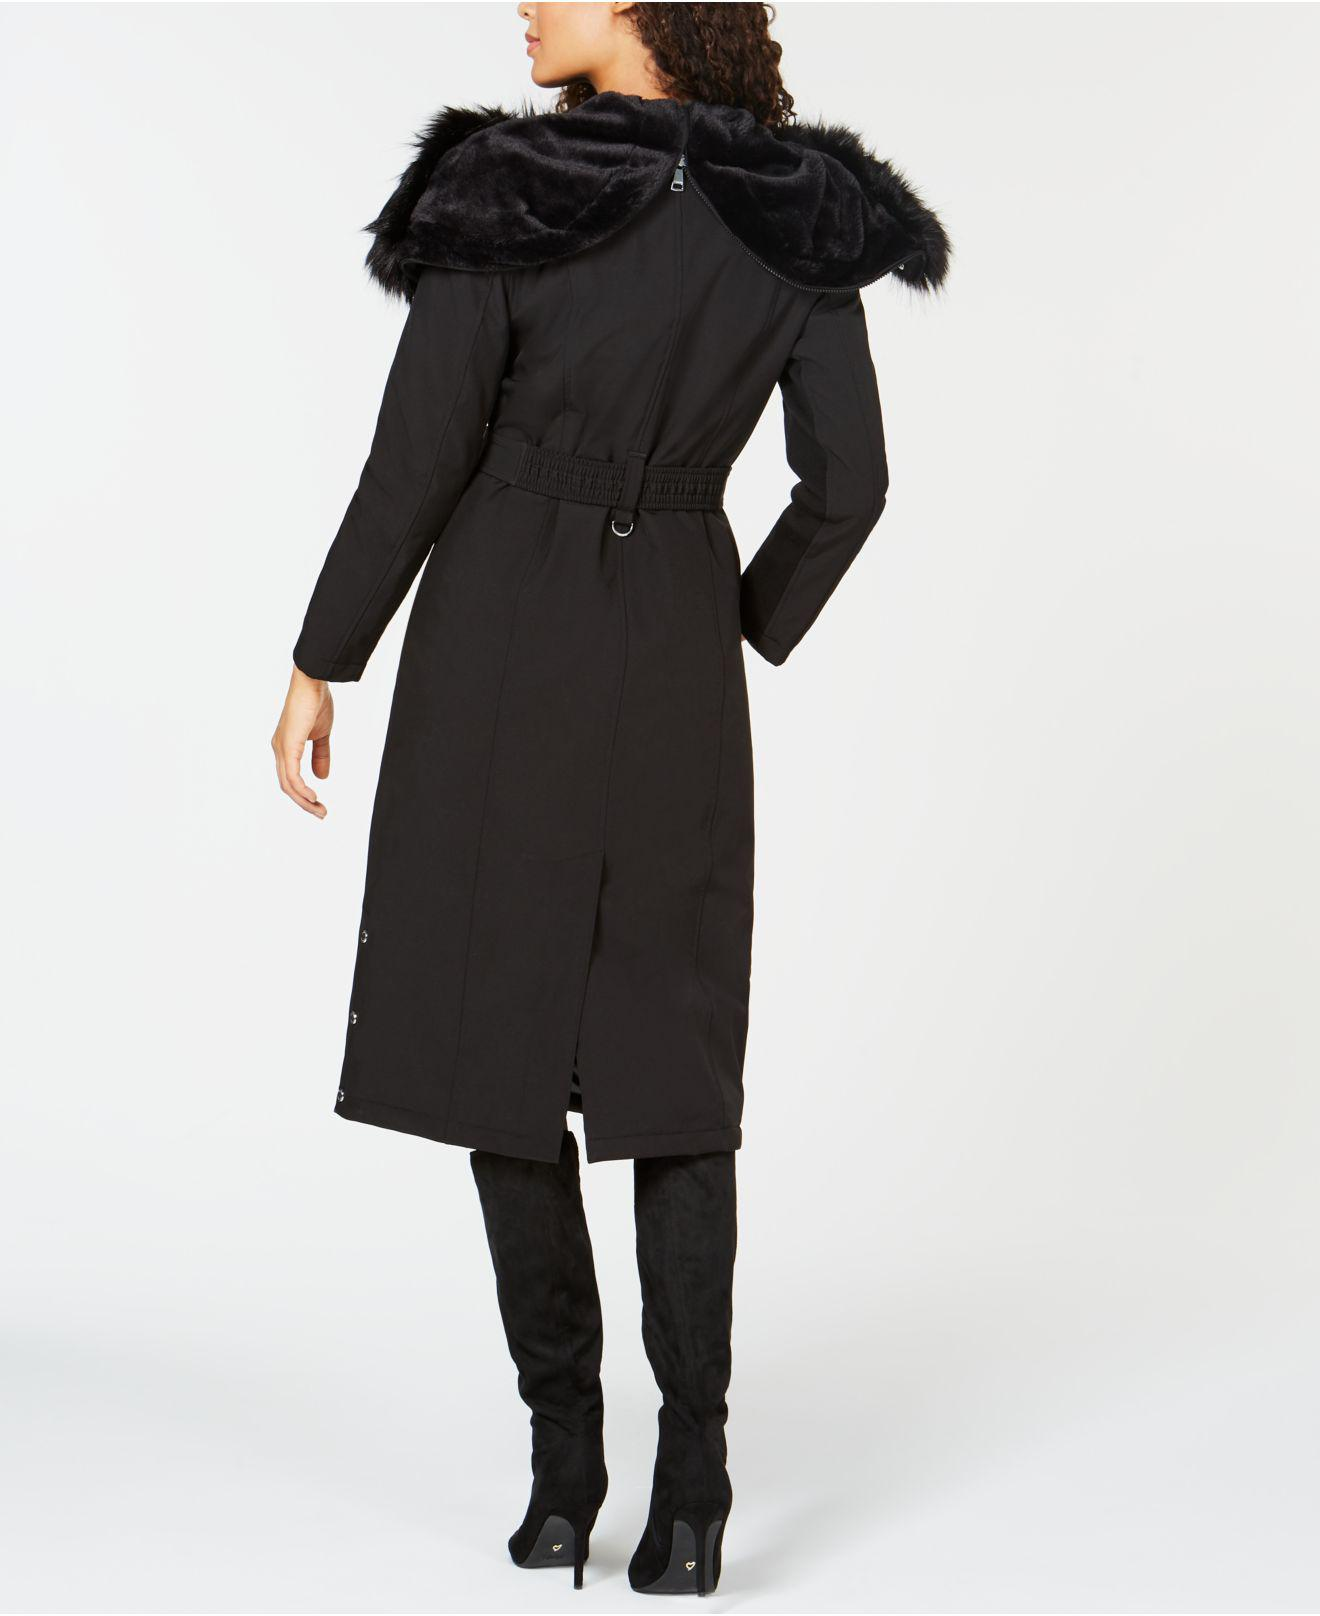 7a8cce1cf6d Lyst - Calvin Klein Faux-fur-trim Hooded Belted Coat in Black